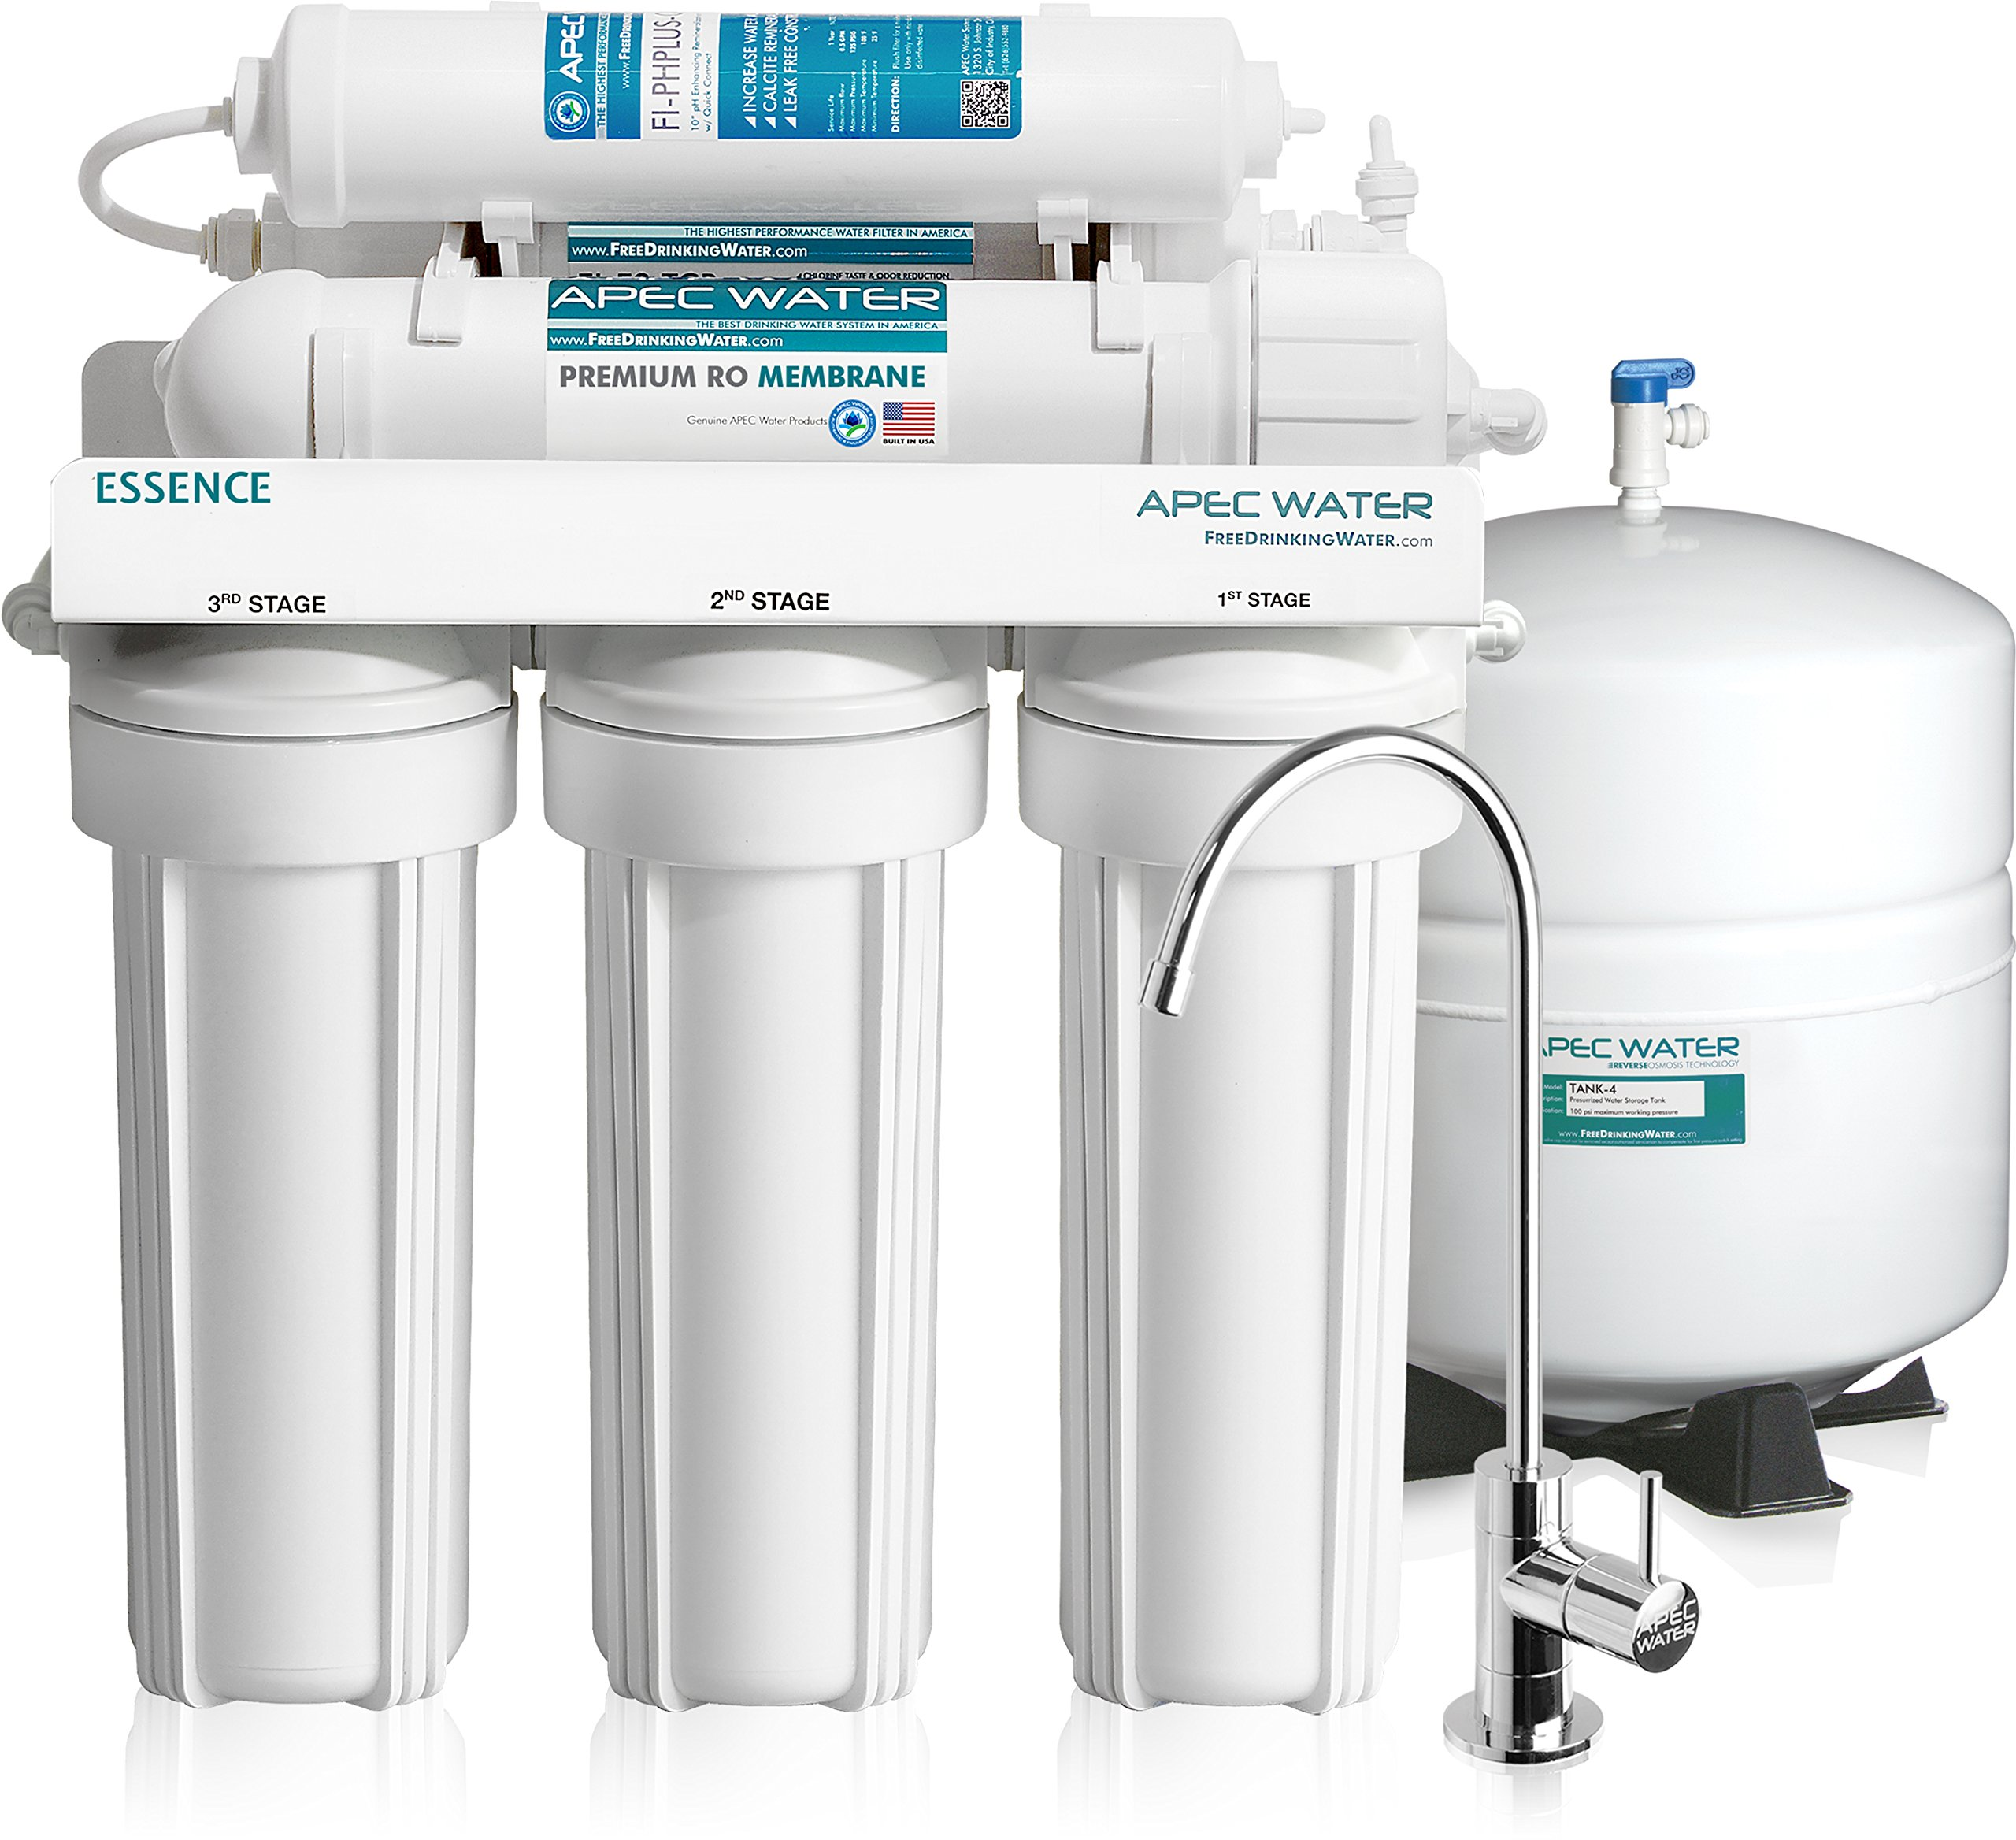 apec roesph75 water systems for whole house